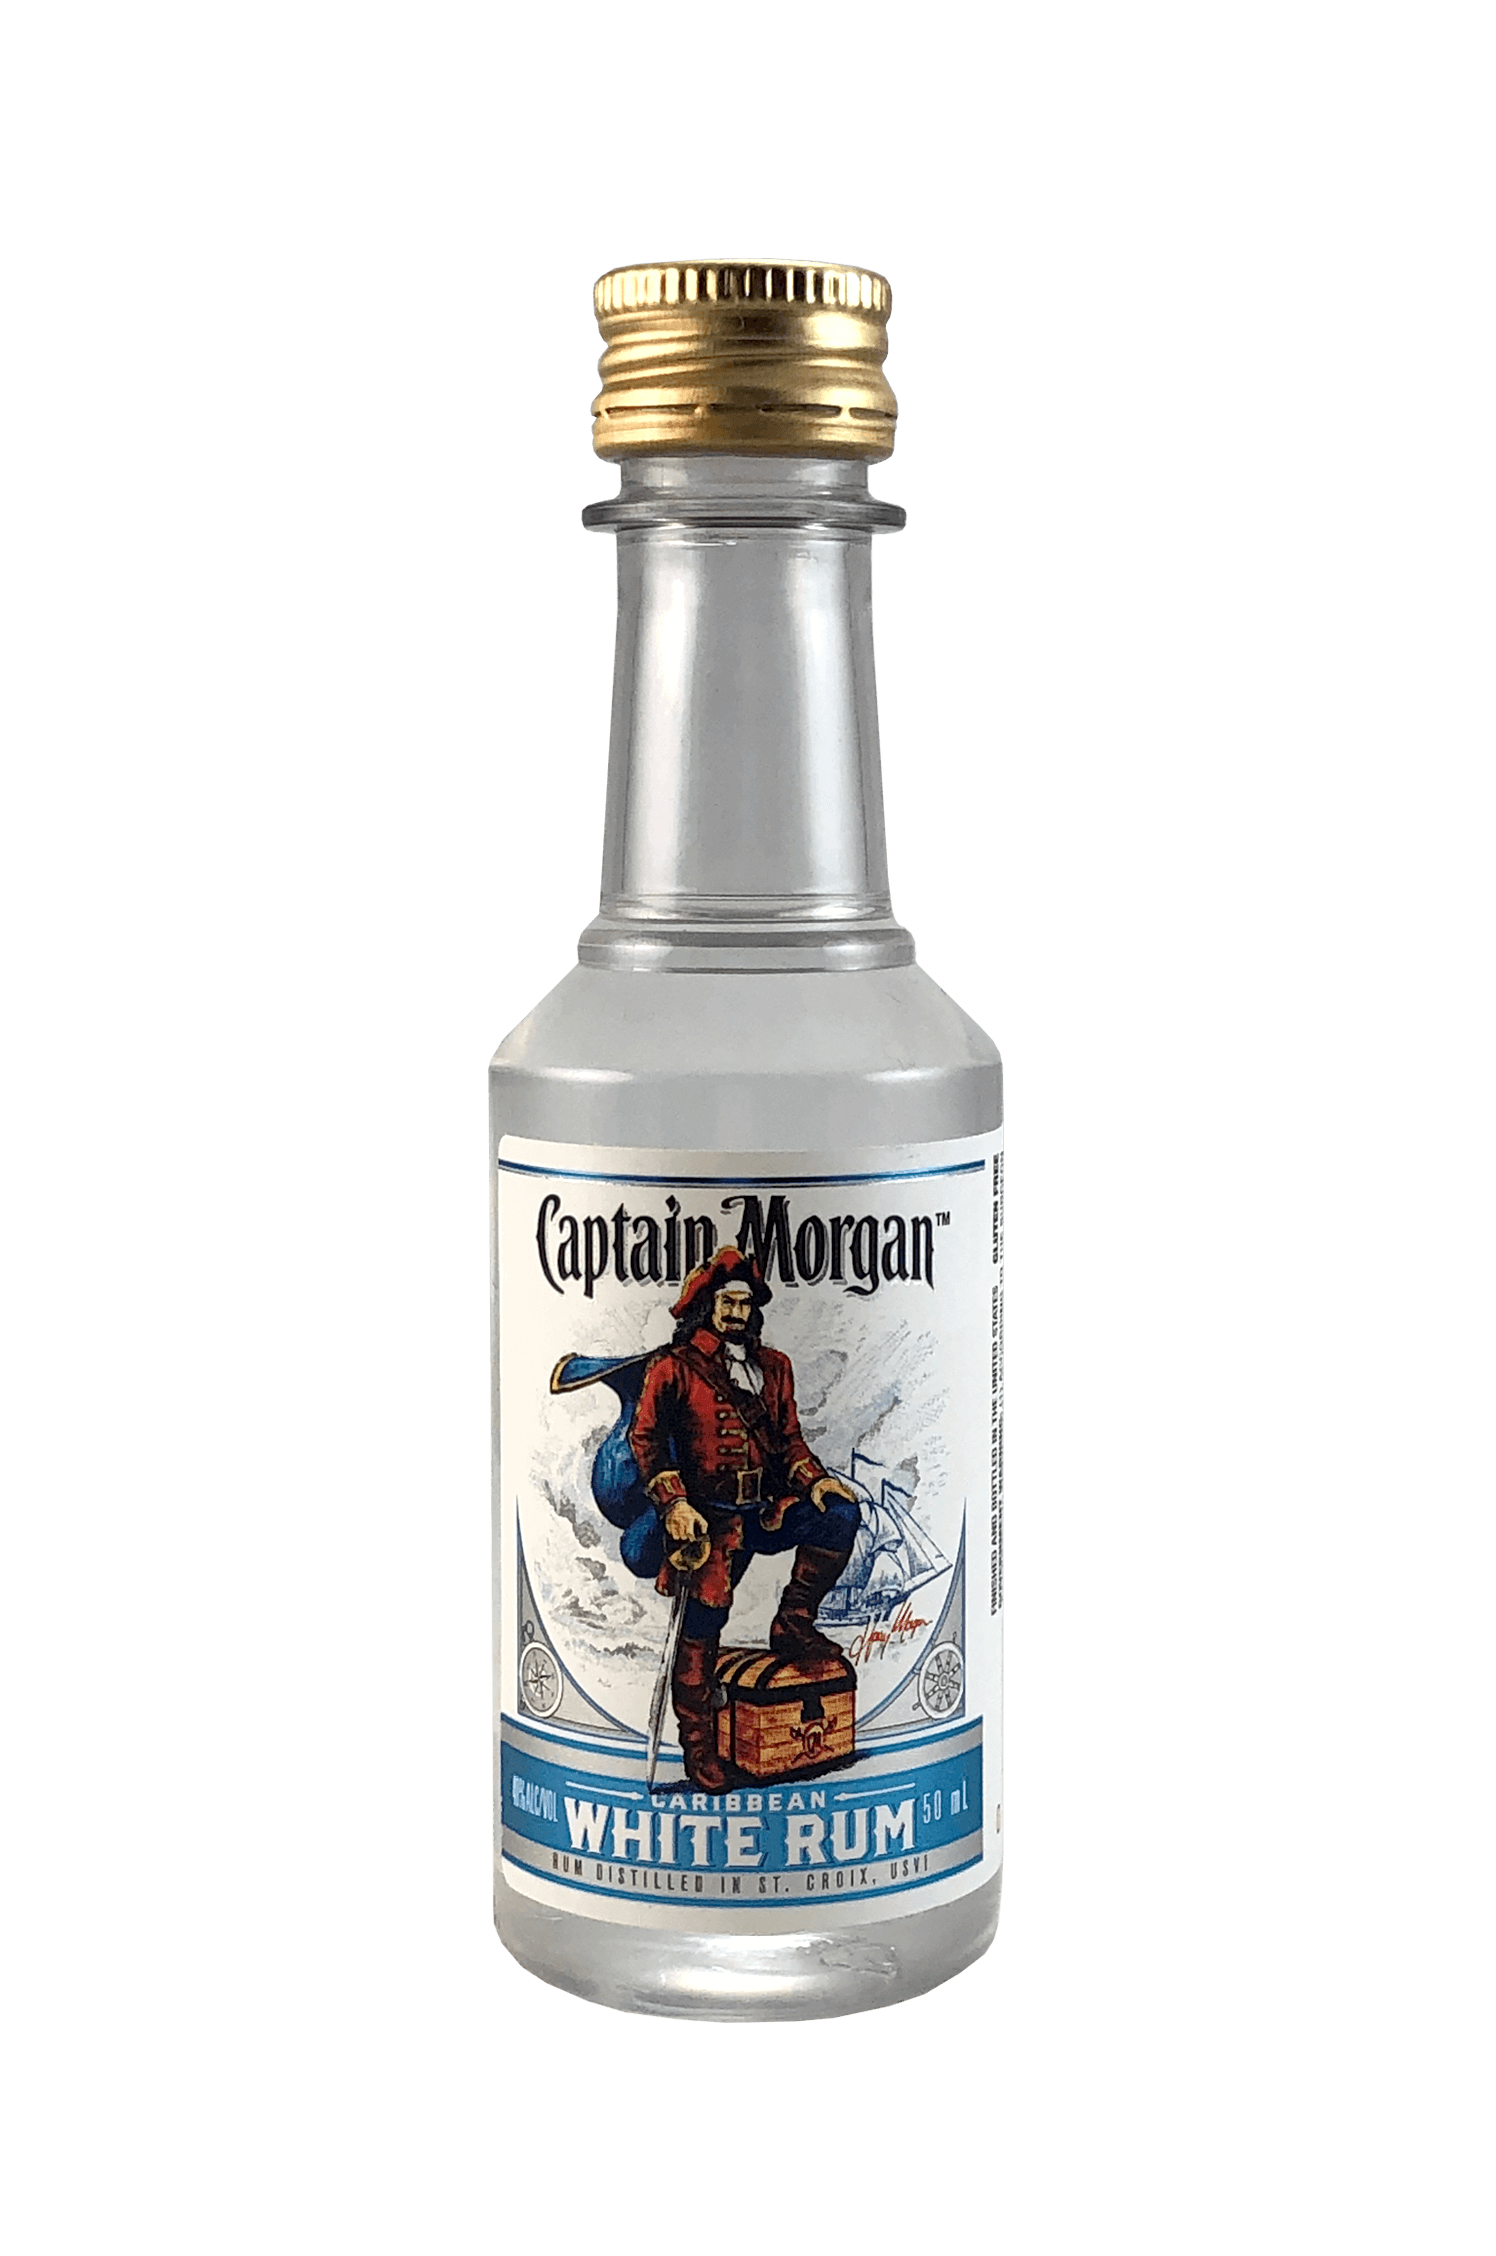 Captain Morgan White Rum